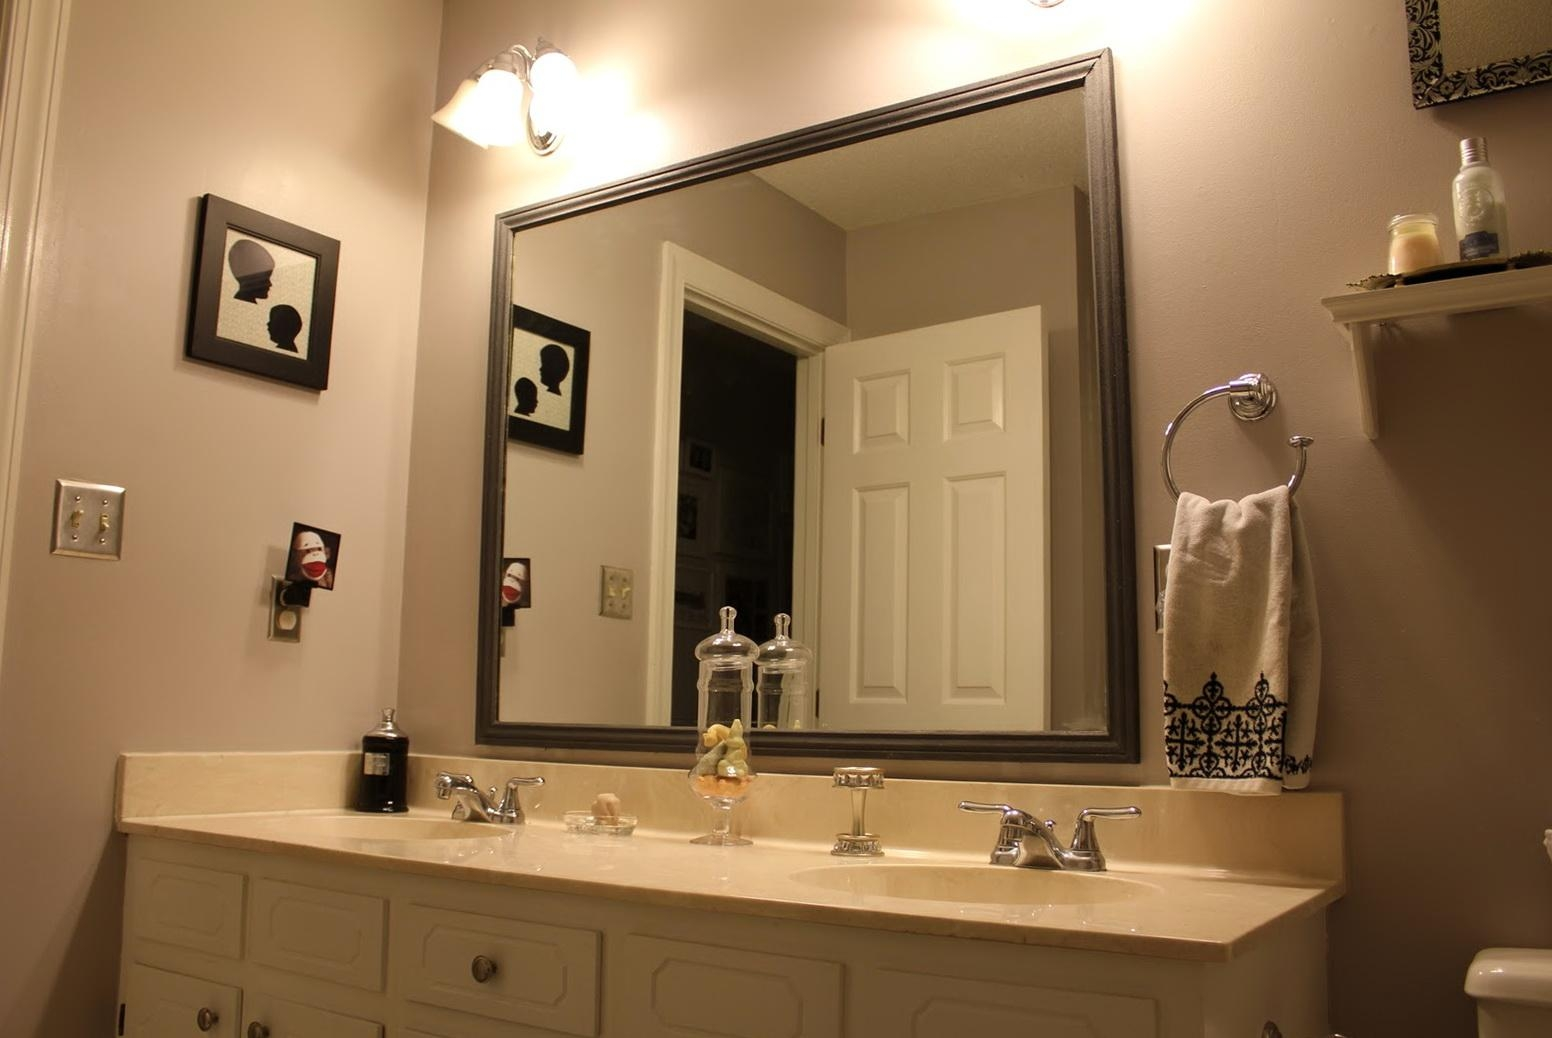 Where Can I Buy A Vanity Mirror Large Flat Bathroom Mirrors Pertaining To Large Flat Bathroom Mirrors (View 3 of 20)